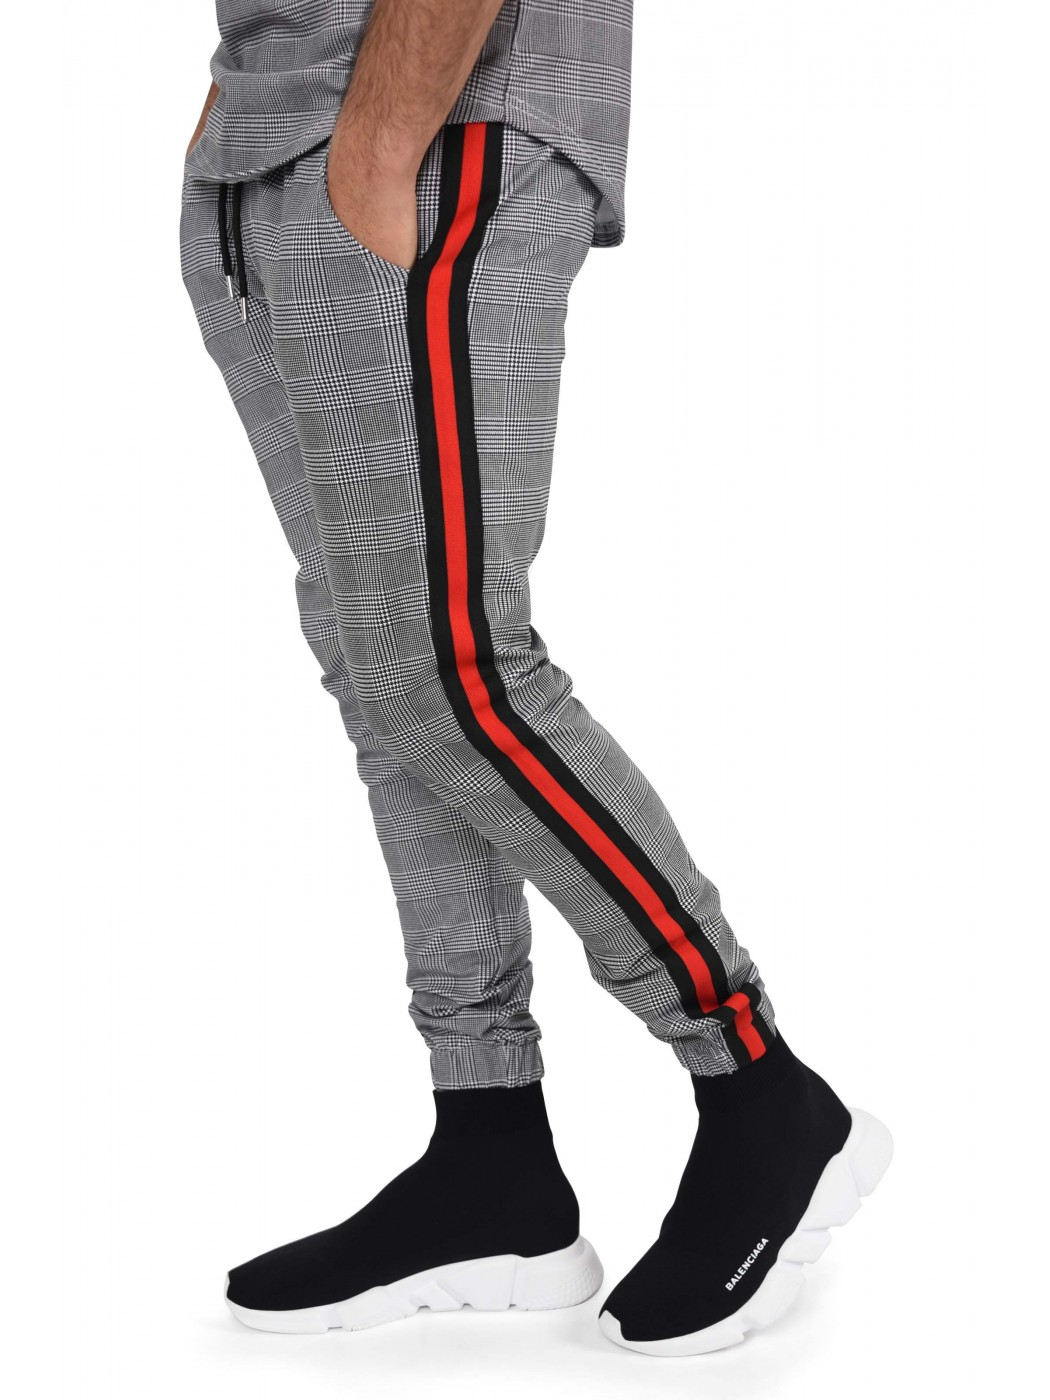 pantalon jogging carreaux et bandes contrastantes homme. Black Bedroom Furniture Sets. Home Design Ideas